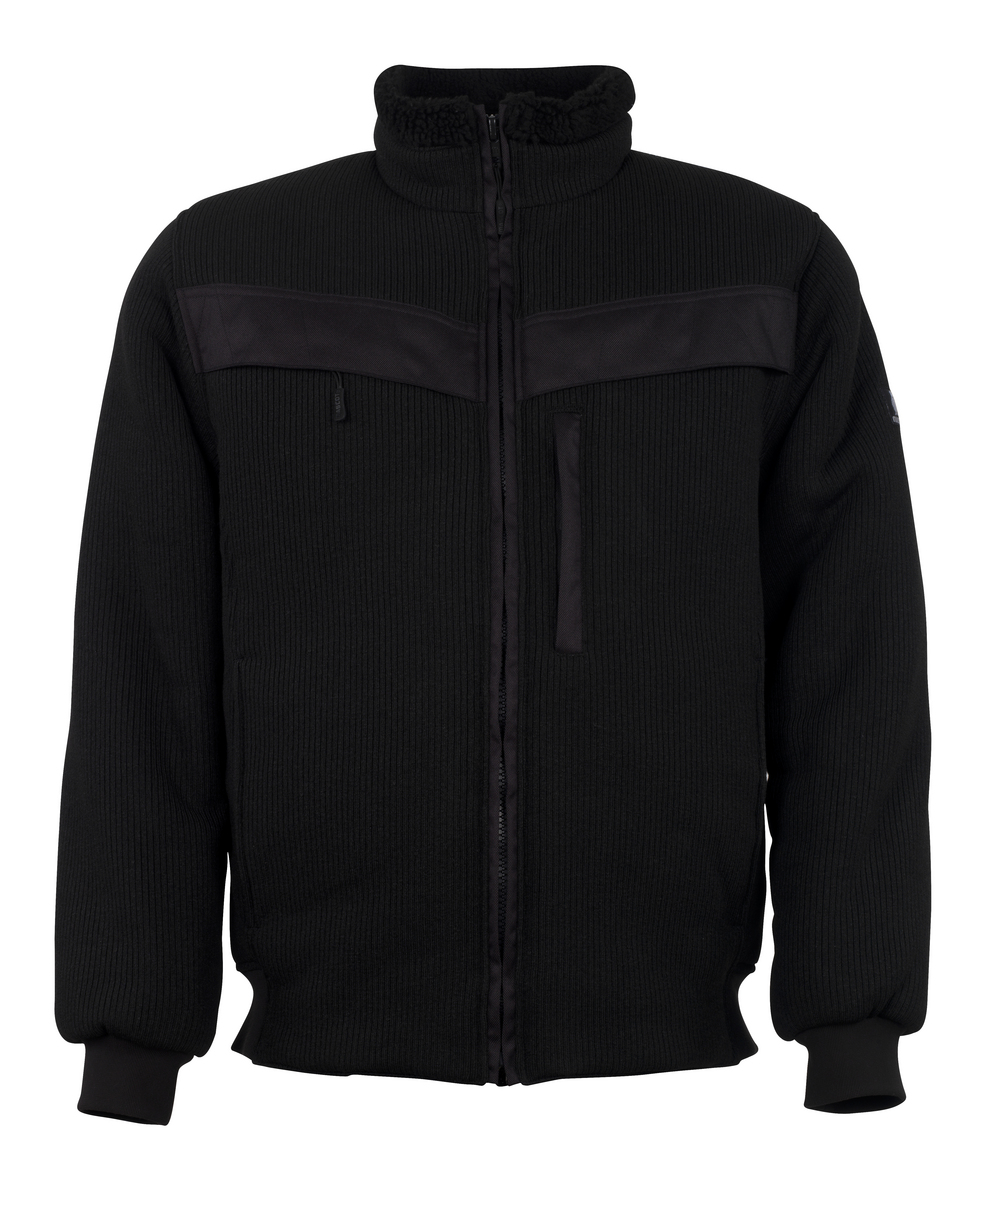 11043-600-09 Knitted Jacket with zipper - black